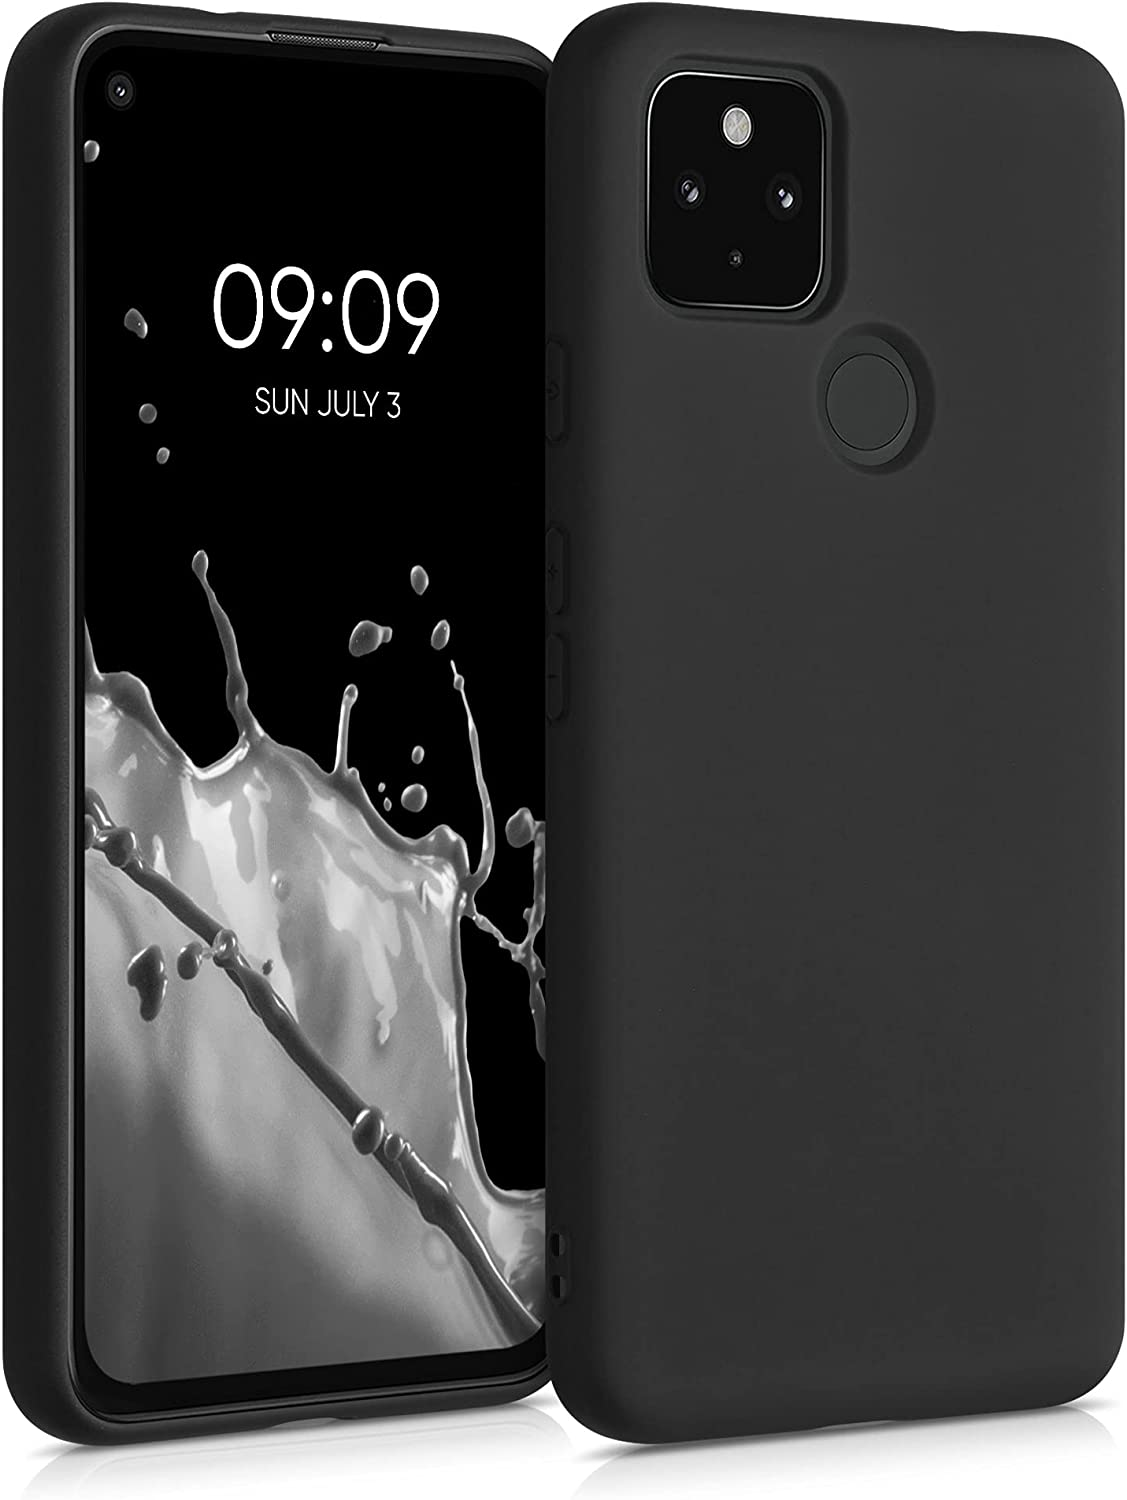 kwmobile Case Compatible with Google Pixel 4a 5G - Case Soft TPU Slim Protective Cover for Phone - Black Matte